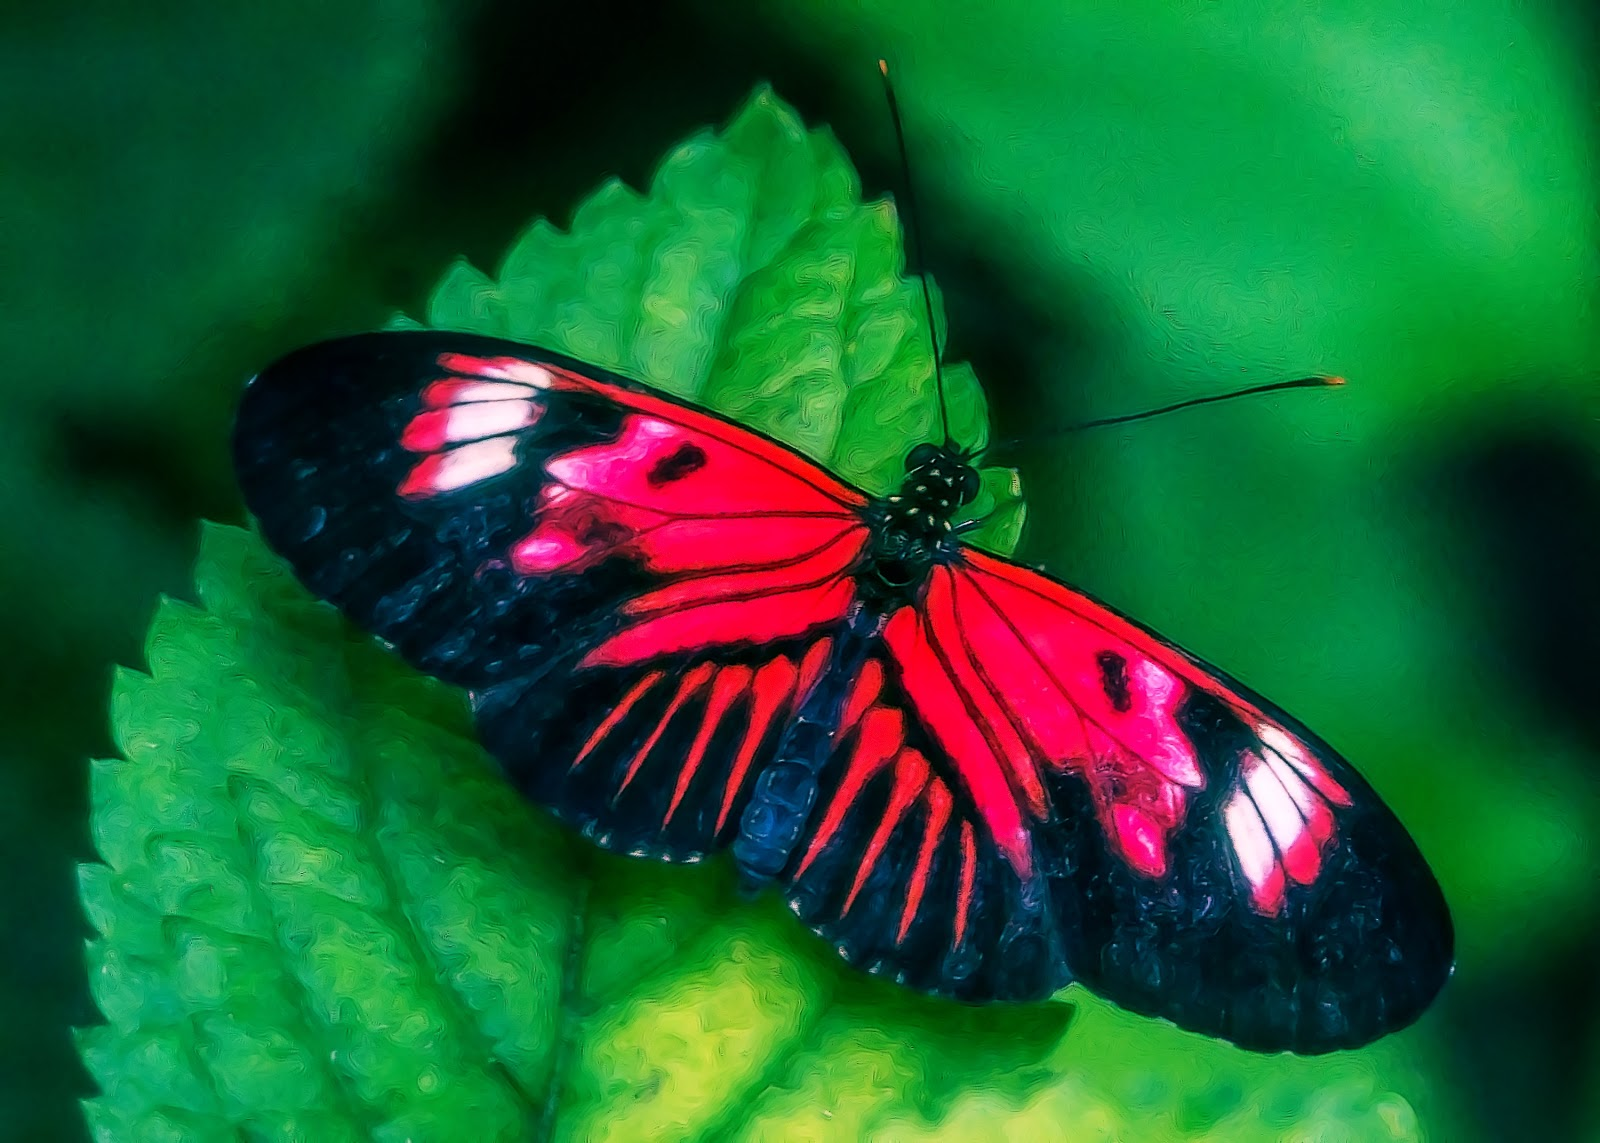 Beautiful Pictures Of Flowers And Butterflies Birds Lynn Wiezycki Photography Butterfly World Butterflies